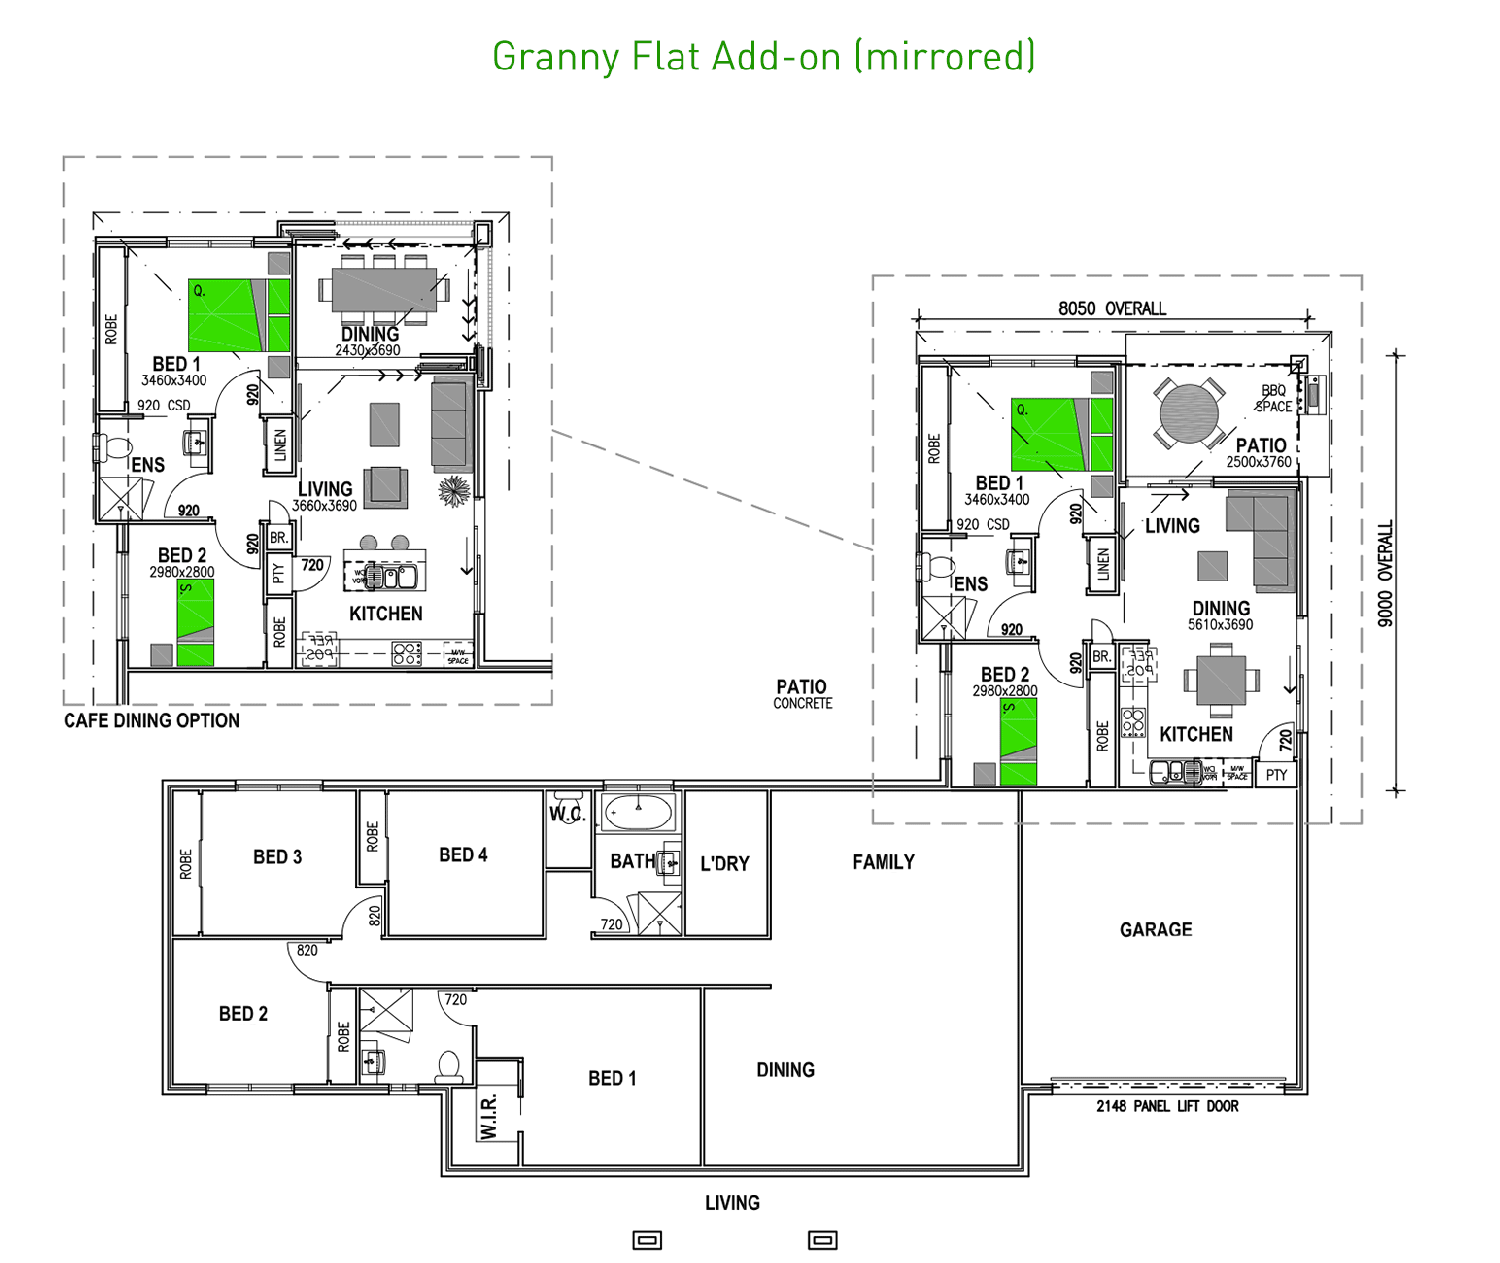 2_bedroom granny flat add on mirrored - Attached House Plans